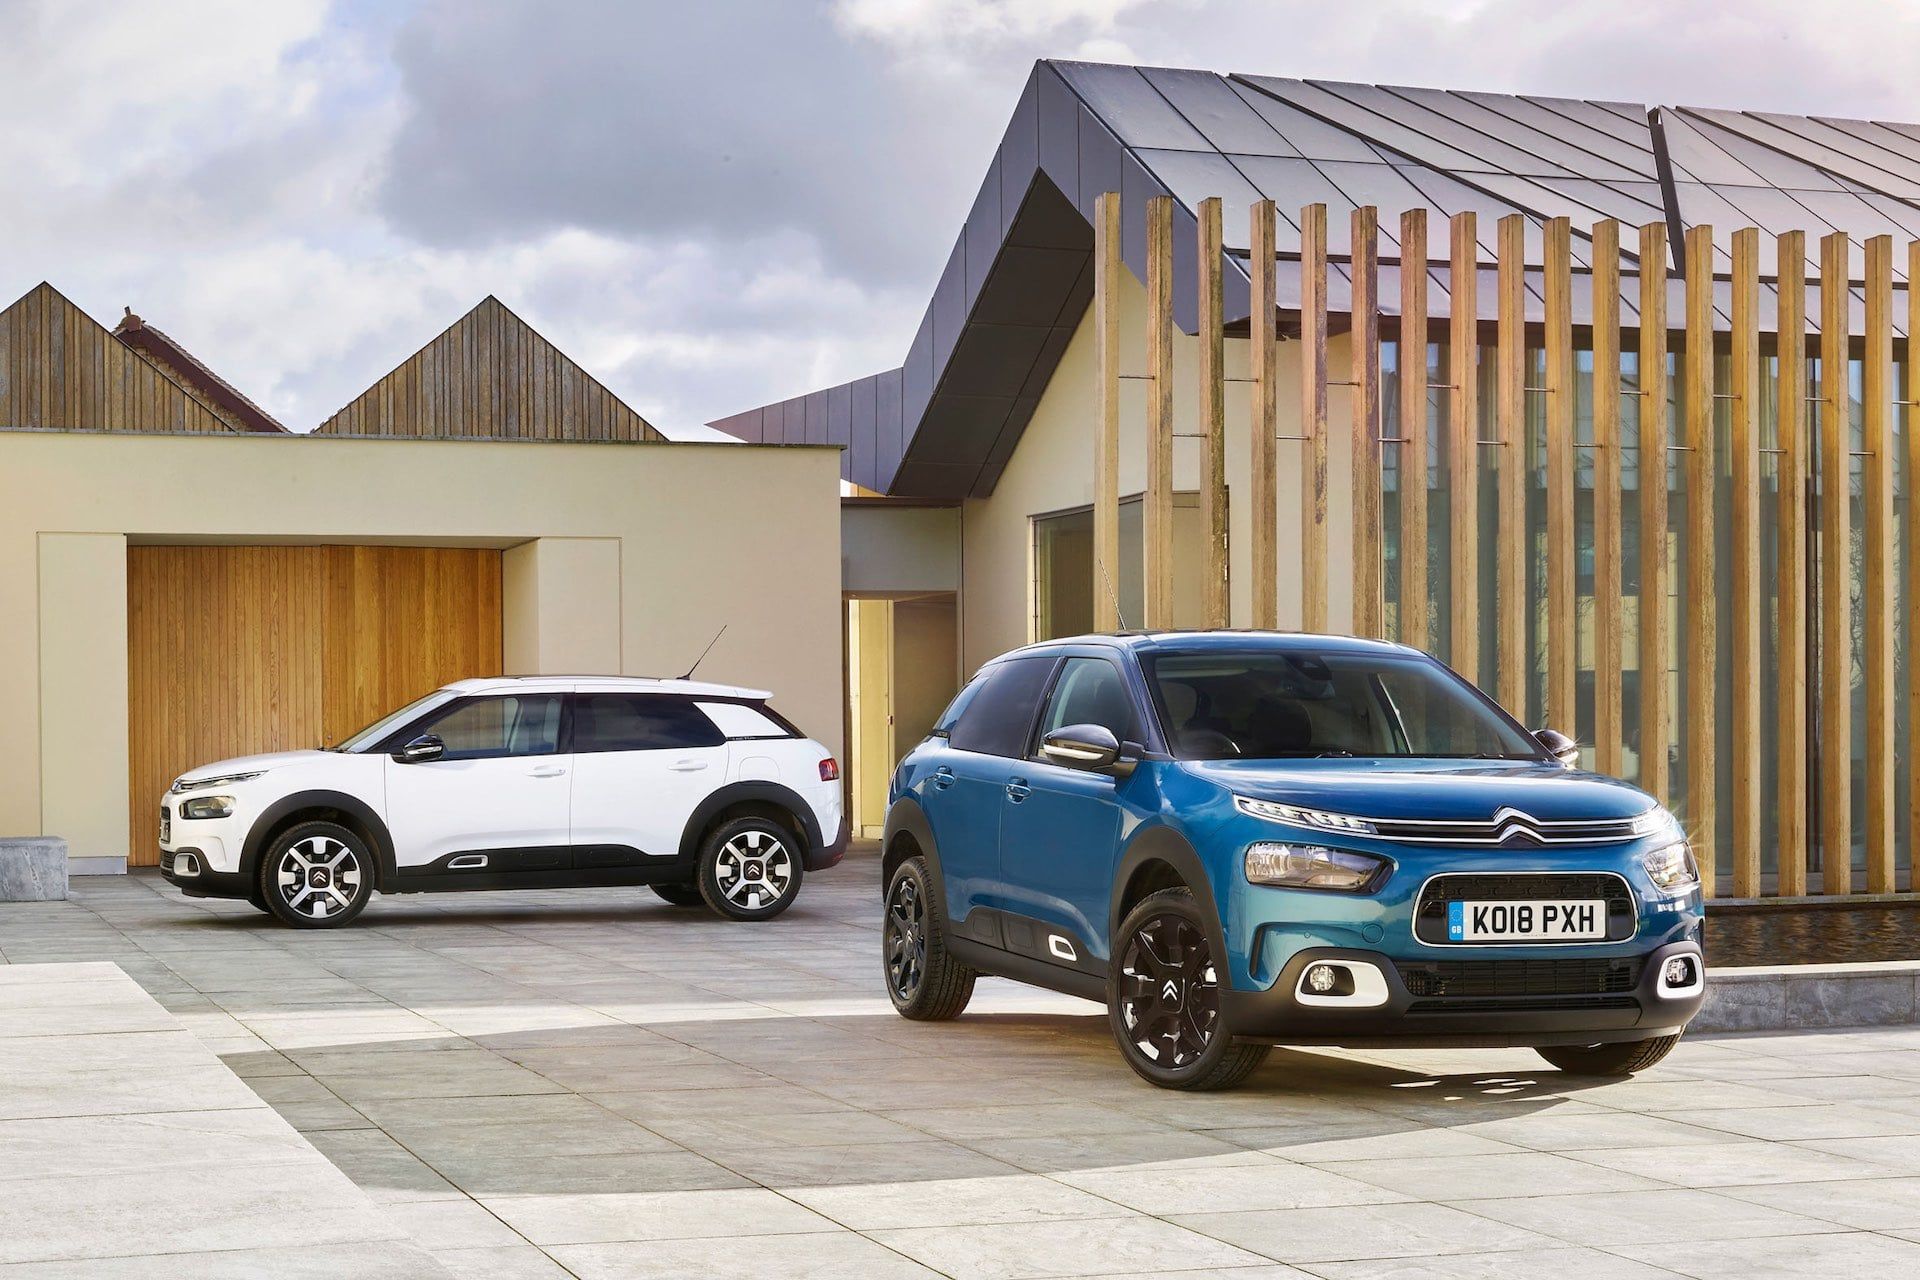 The 2018 Citroën C4 Cactus is less quirky, more stylish